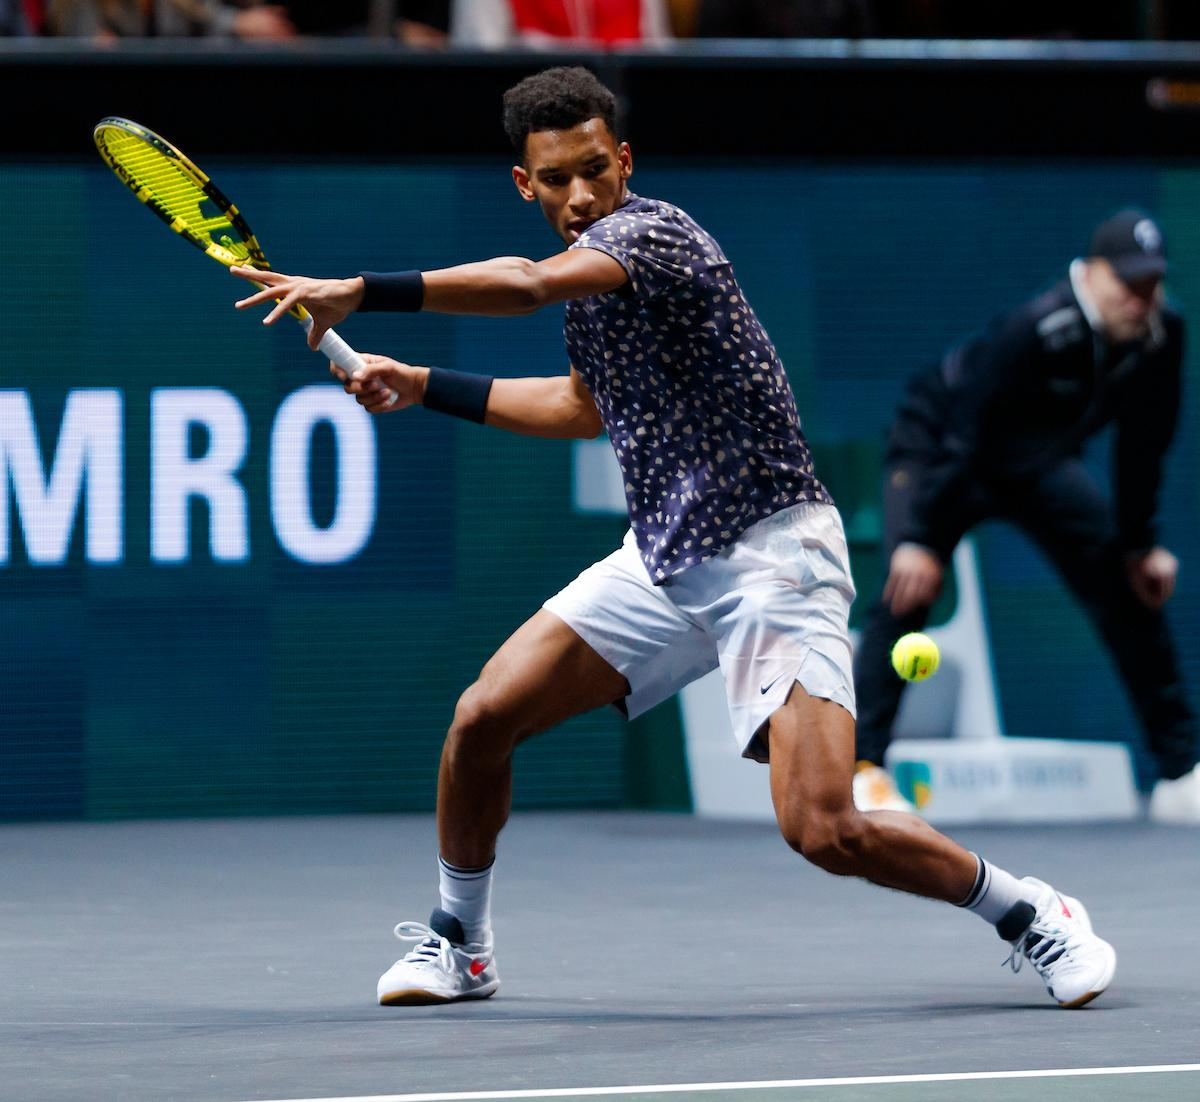 Auger-Aliassime writes tournament history